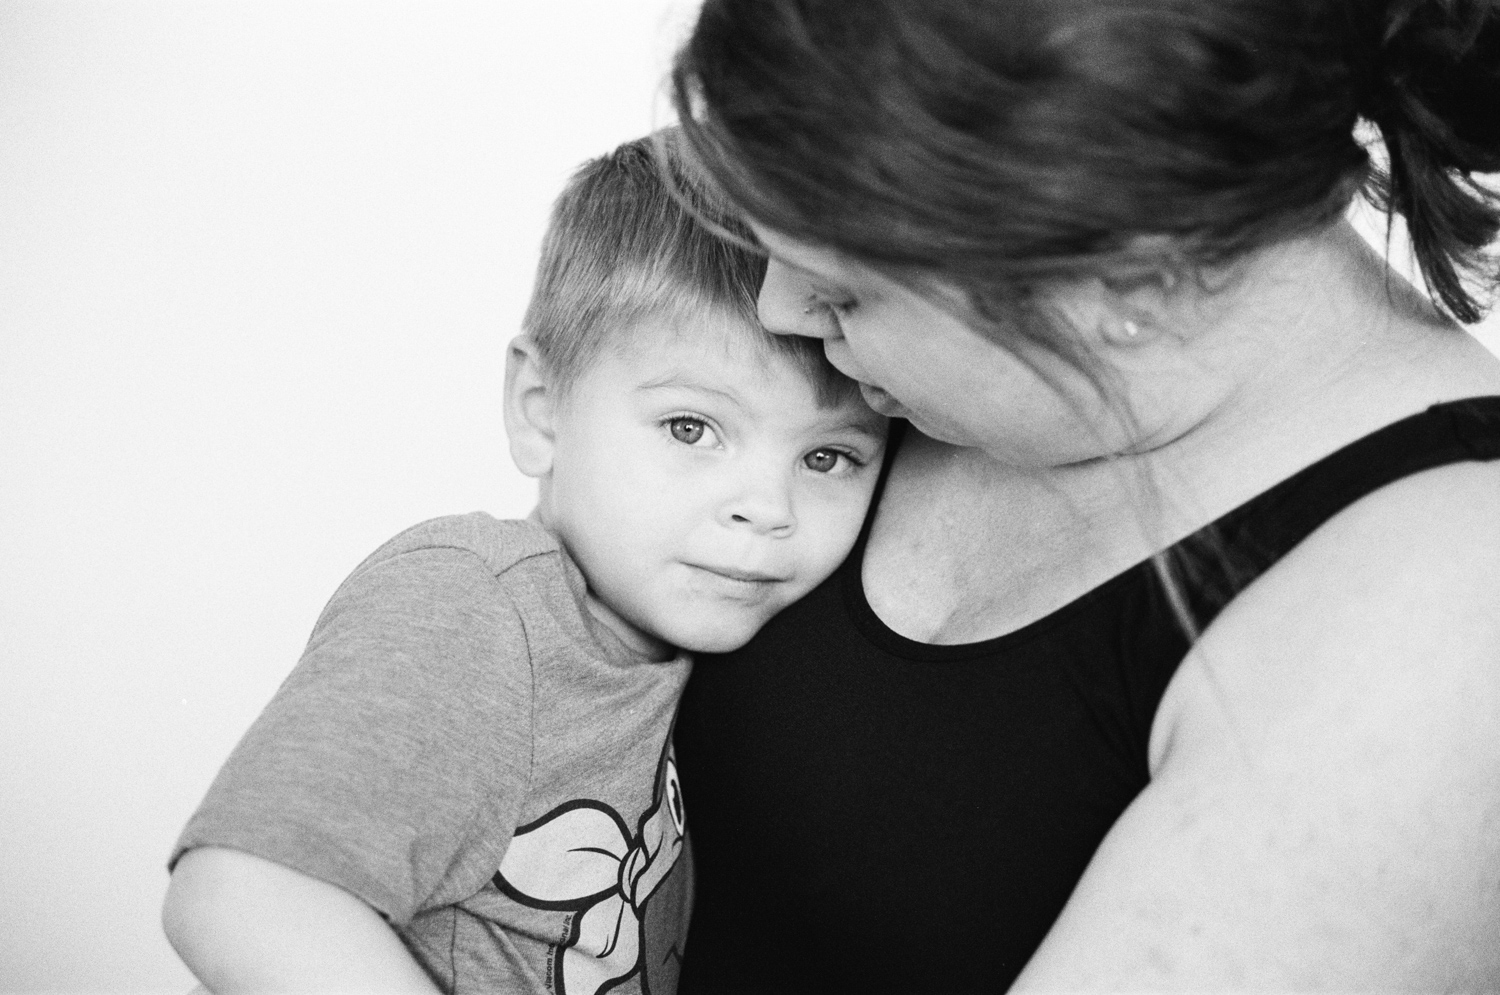 Portrait of mom and son hugging.